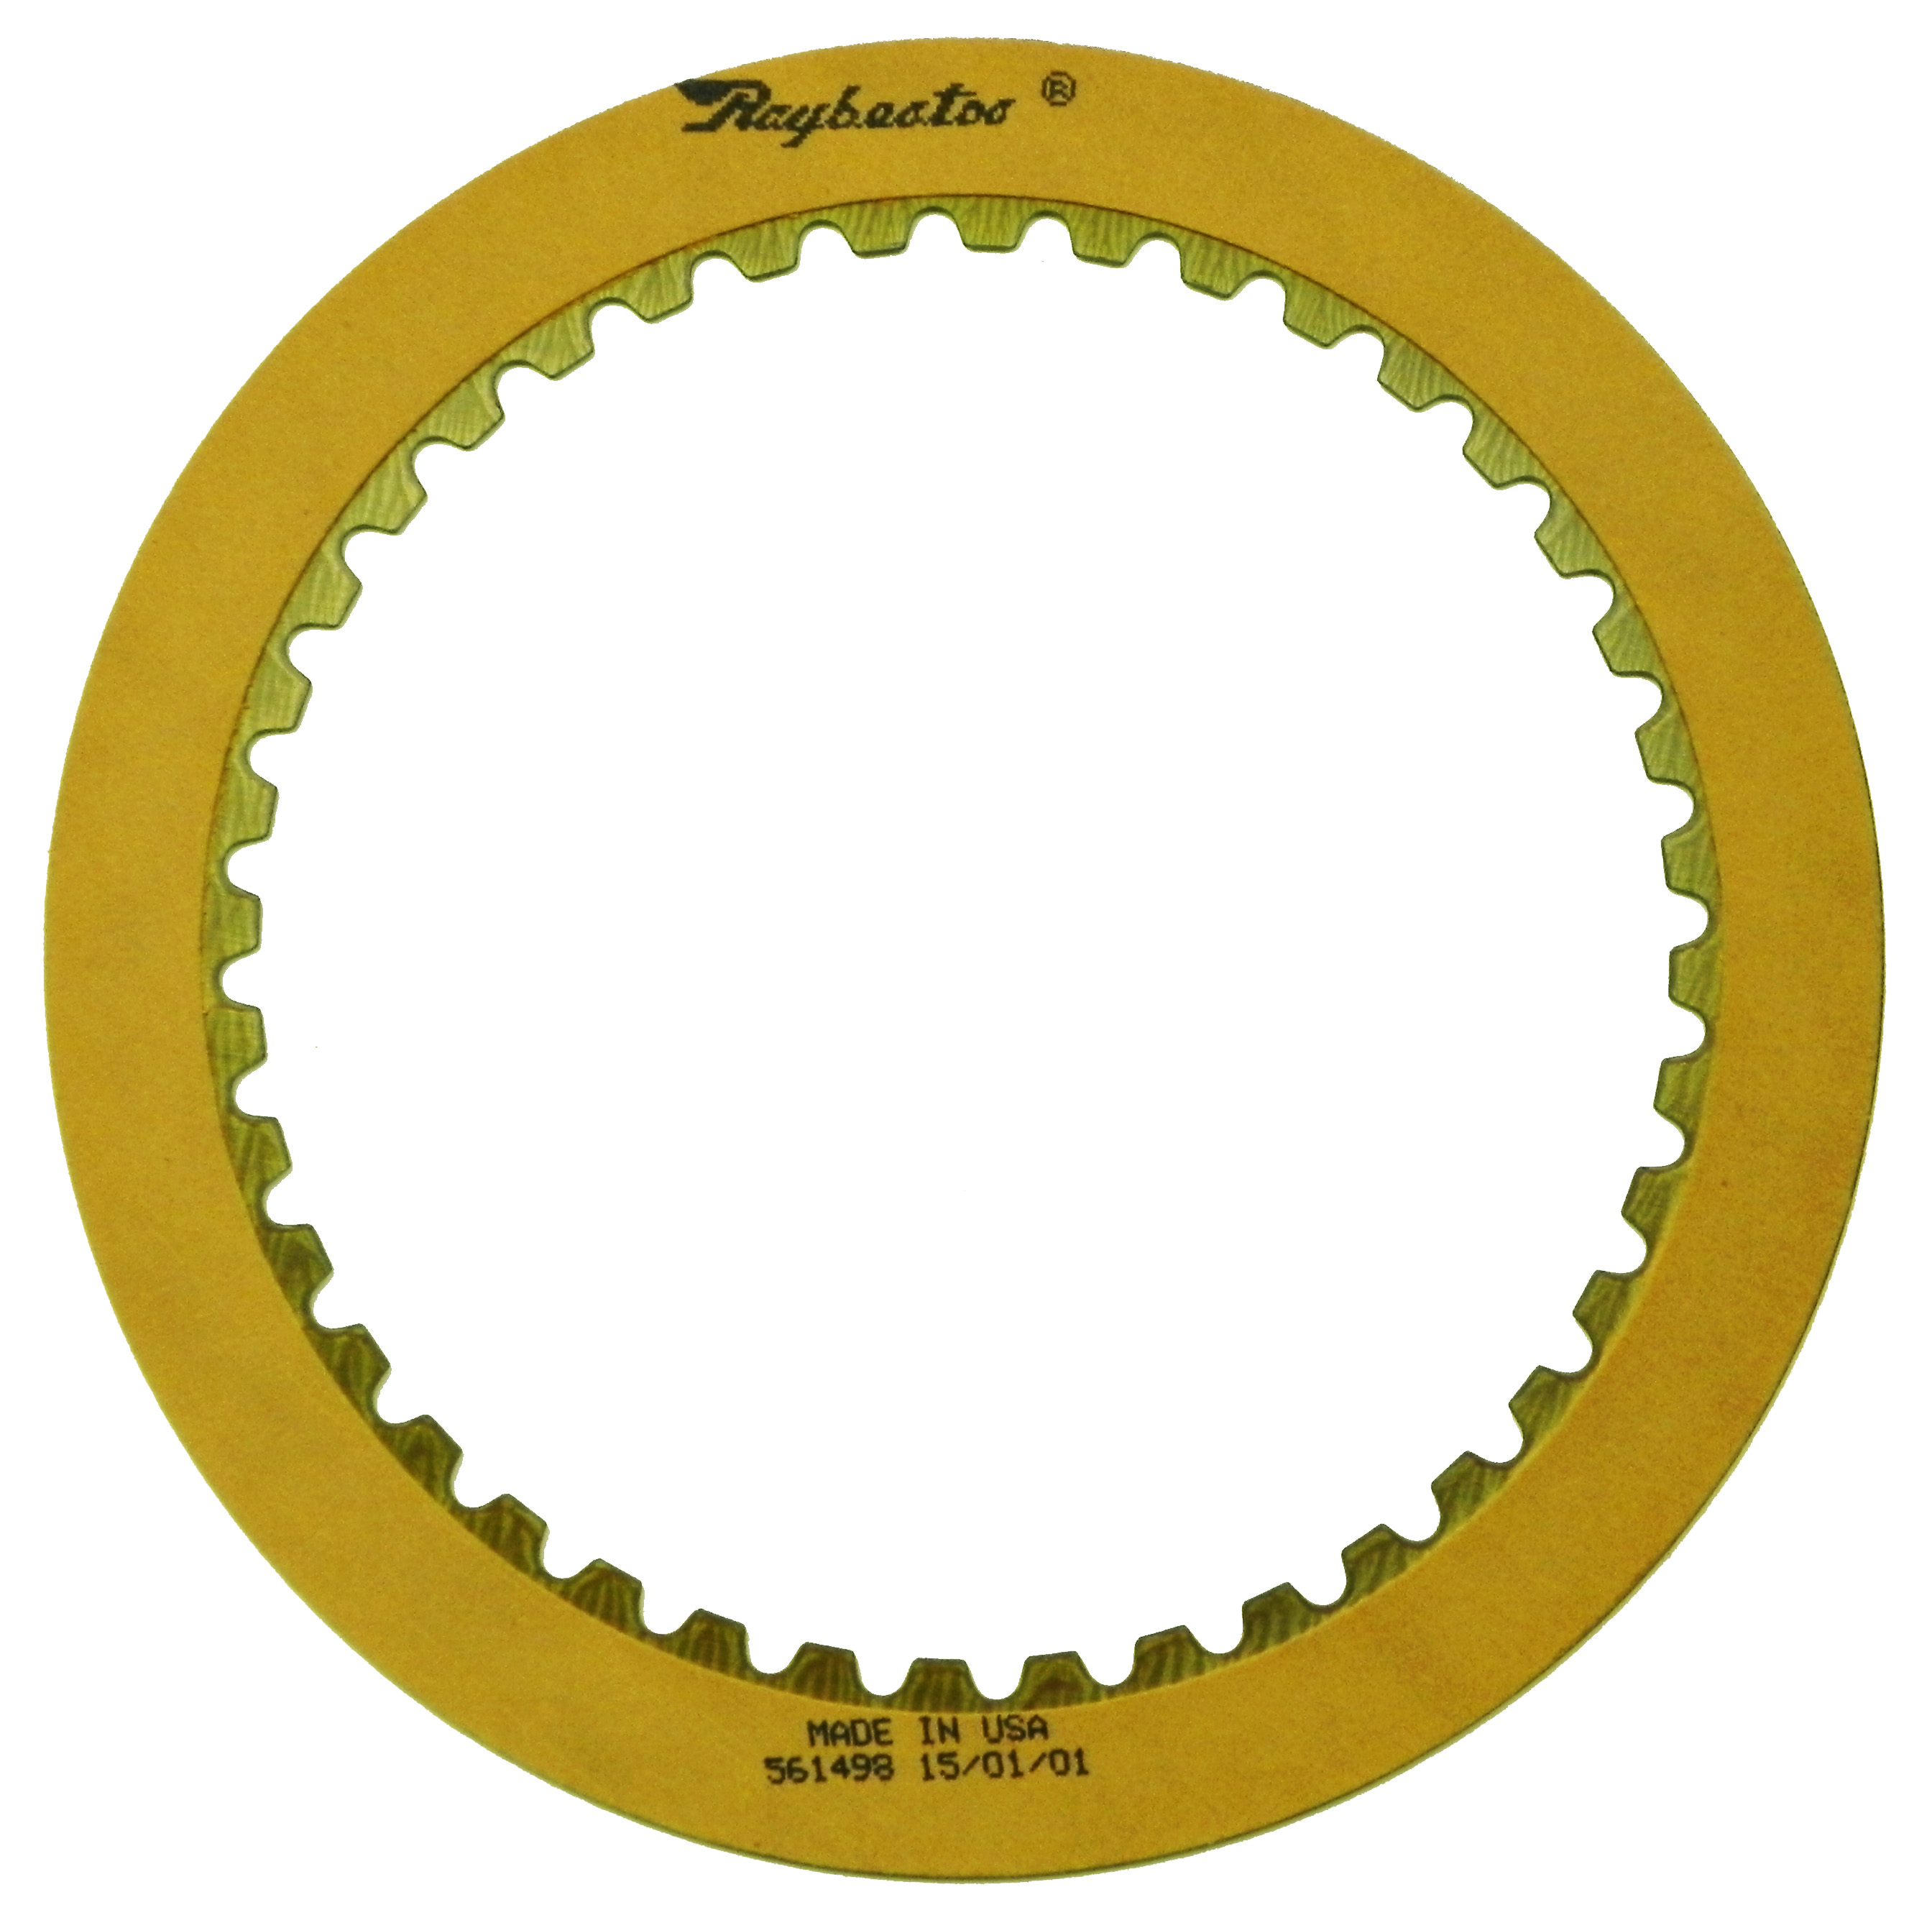 R561498   1985-ON Friction Clutch Plate OE Replacement Low, Reverse, 2nd Design